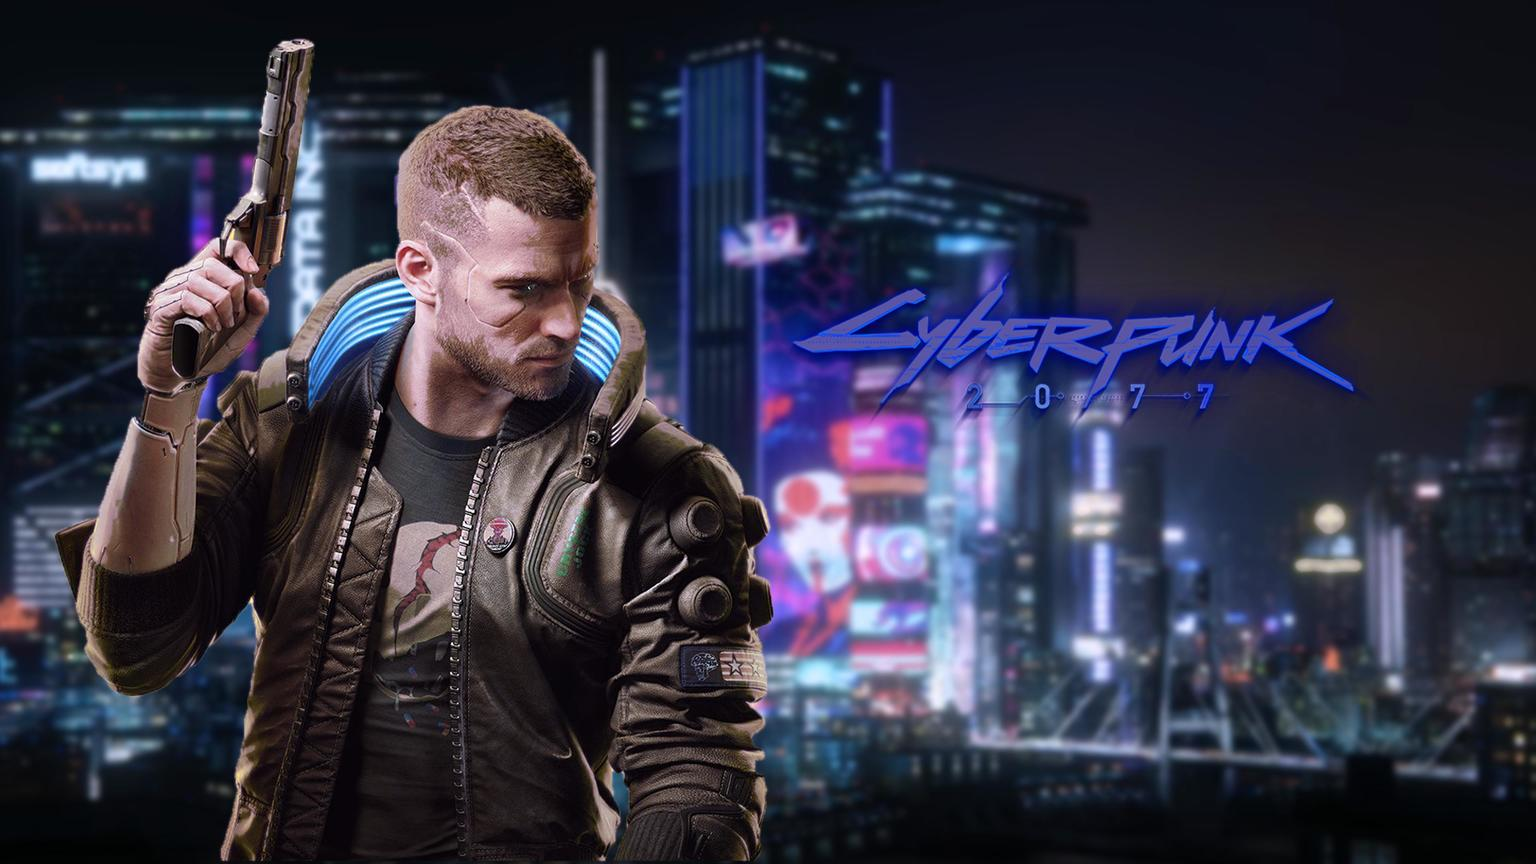 Cyberpunk 2077 and a story about the city